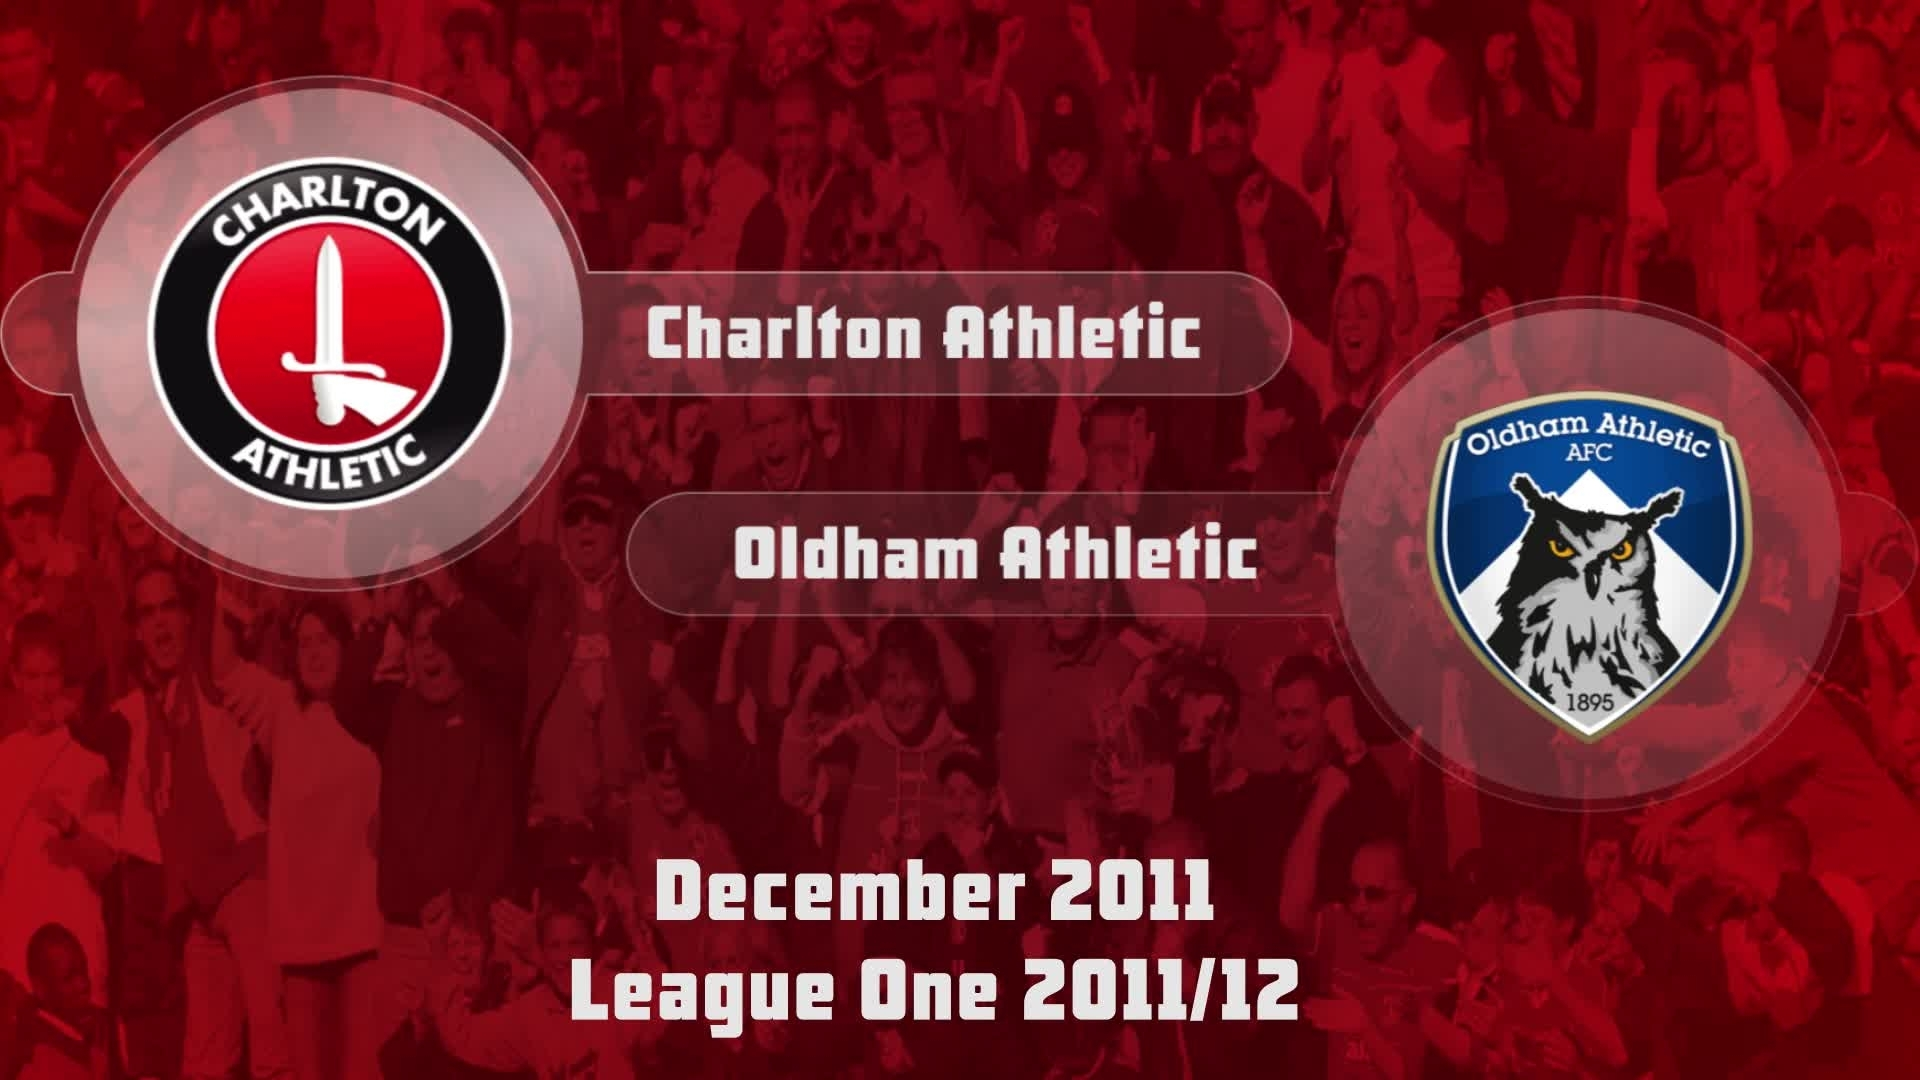 26 HIGHLIGHTS | Charlton 1 Oldham 1 (Dec 2011)